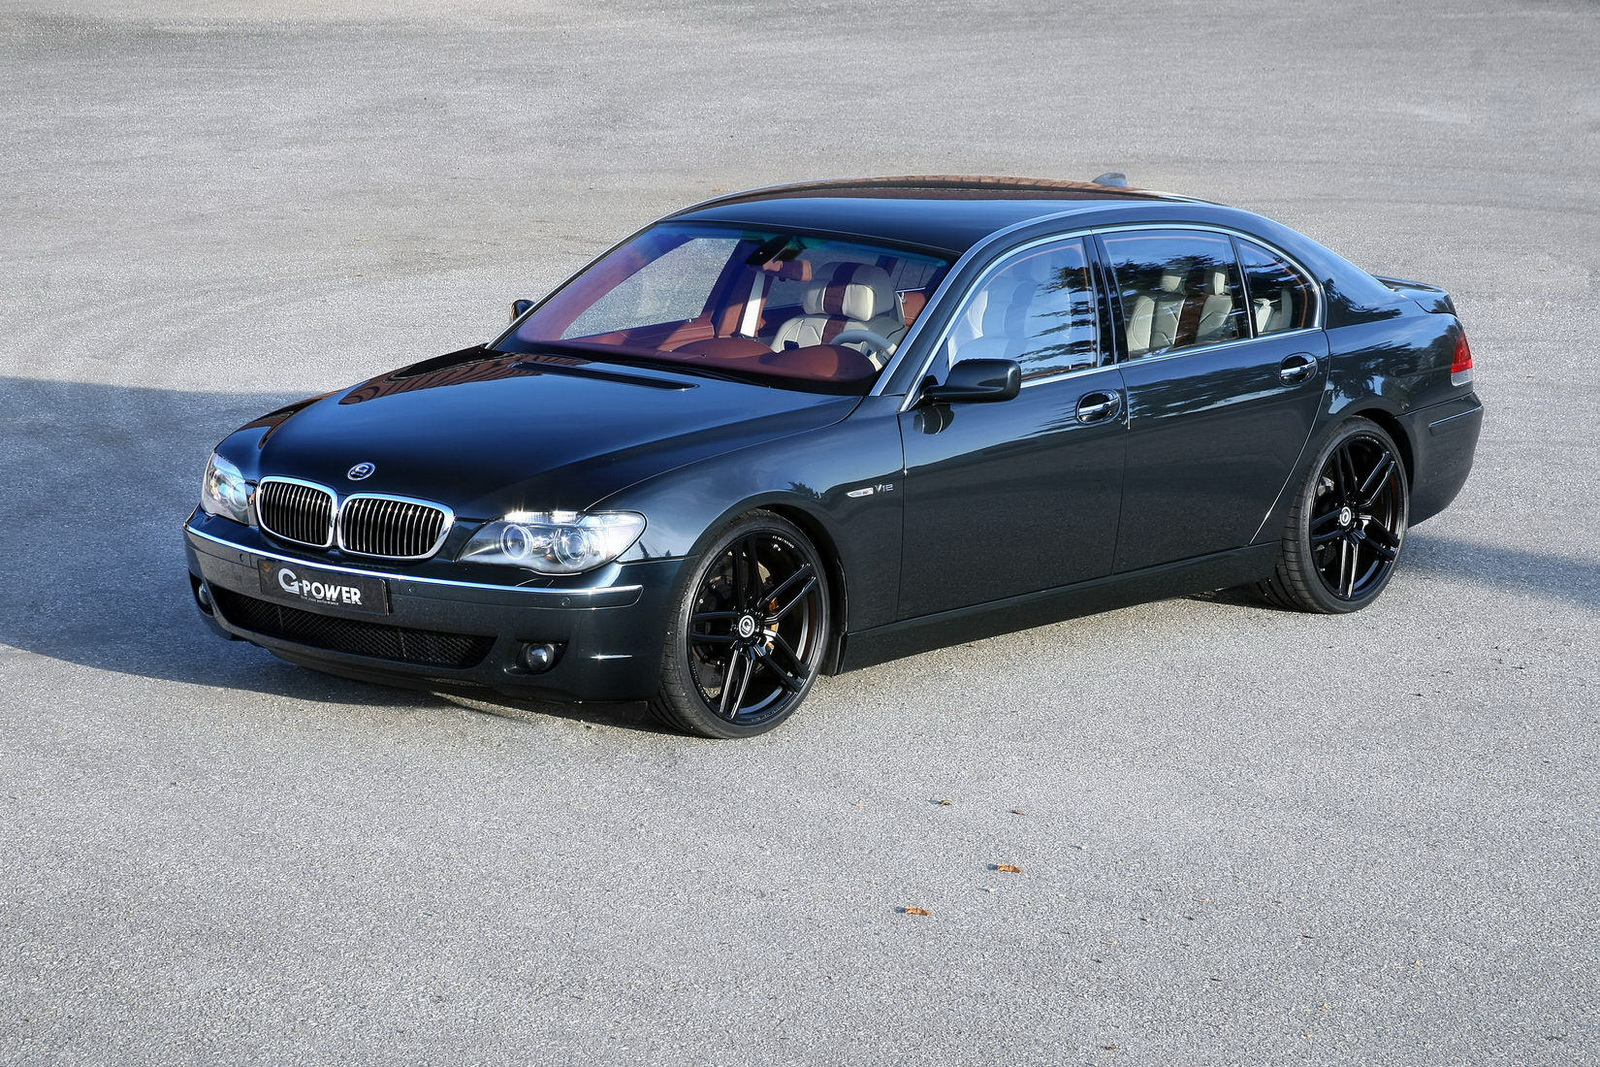 BMW 7 Series E65 Receives Cabin Updates Courtesy To G Power